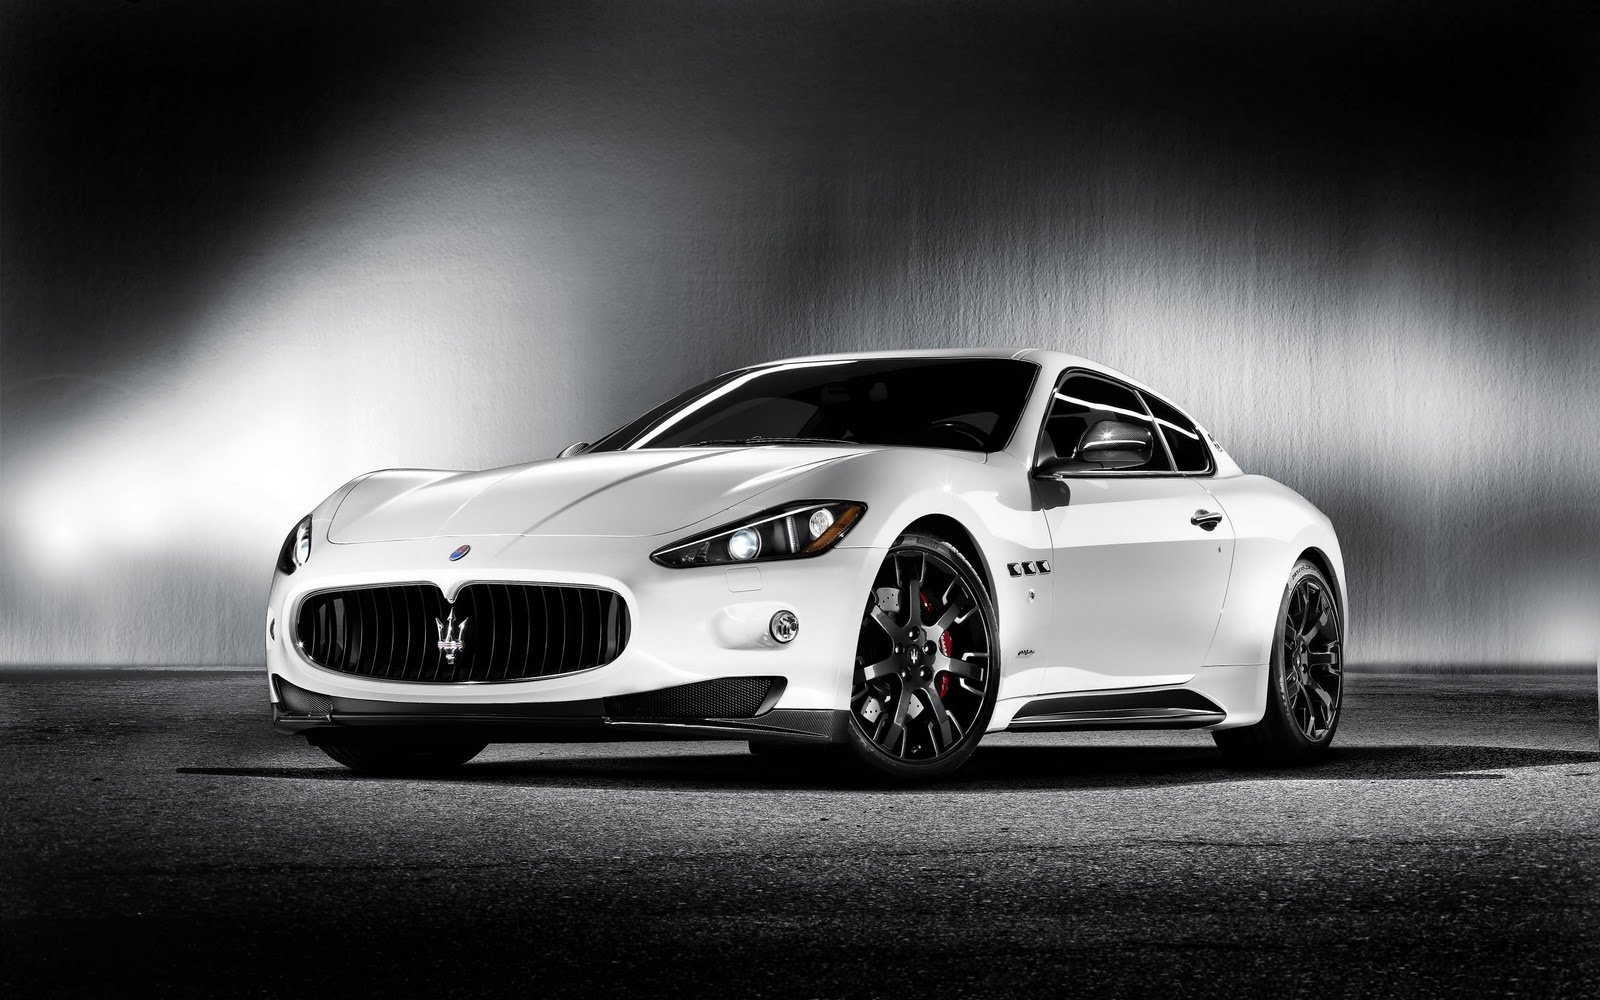 Latest Free Cars Hd Wallpapers Maserati Quattroporte S Sport Car Free Download